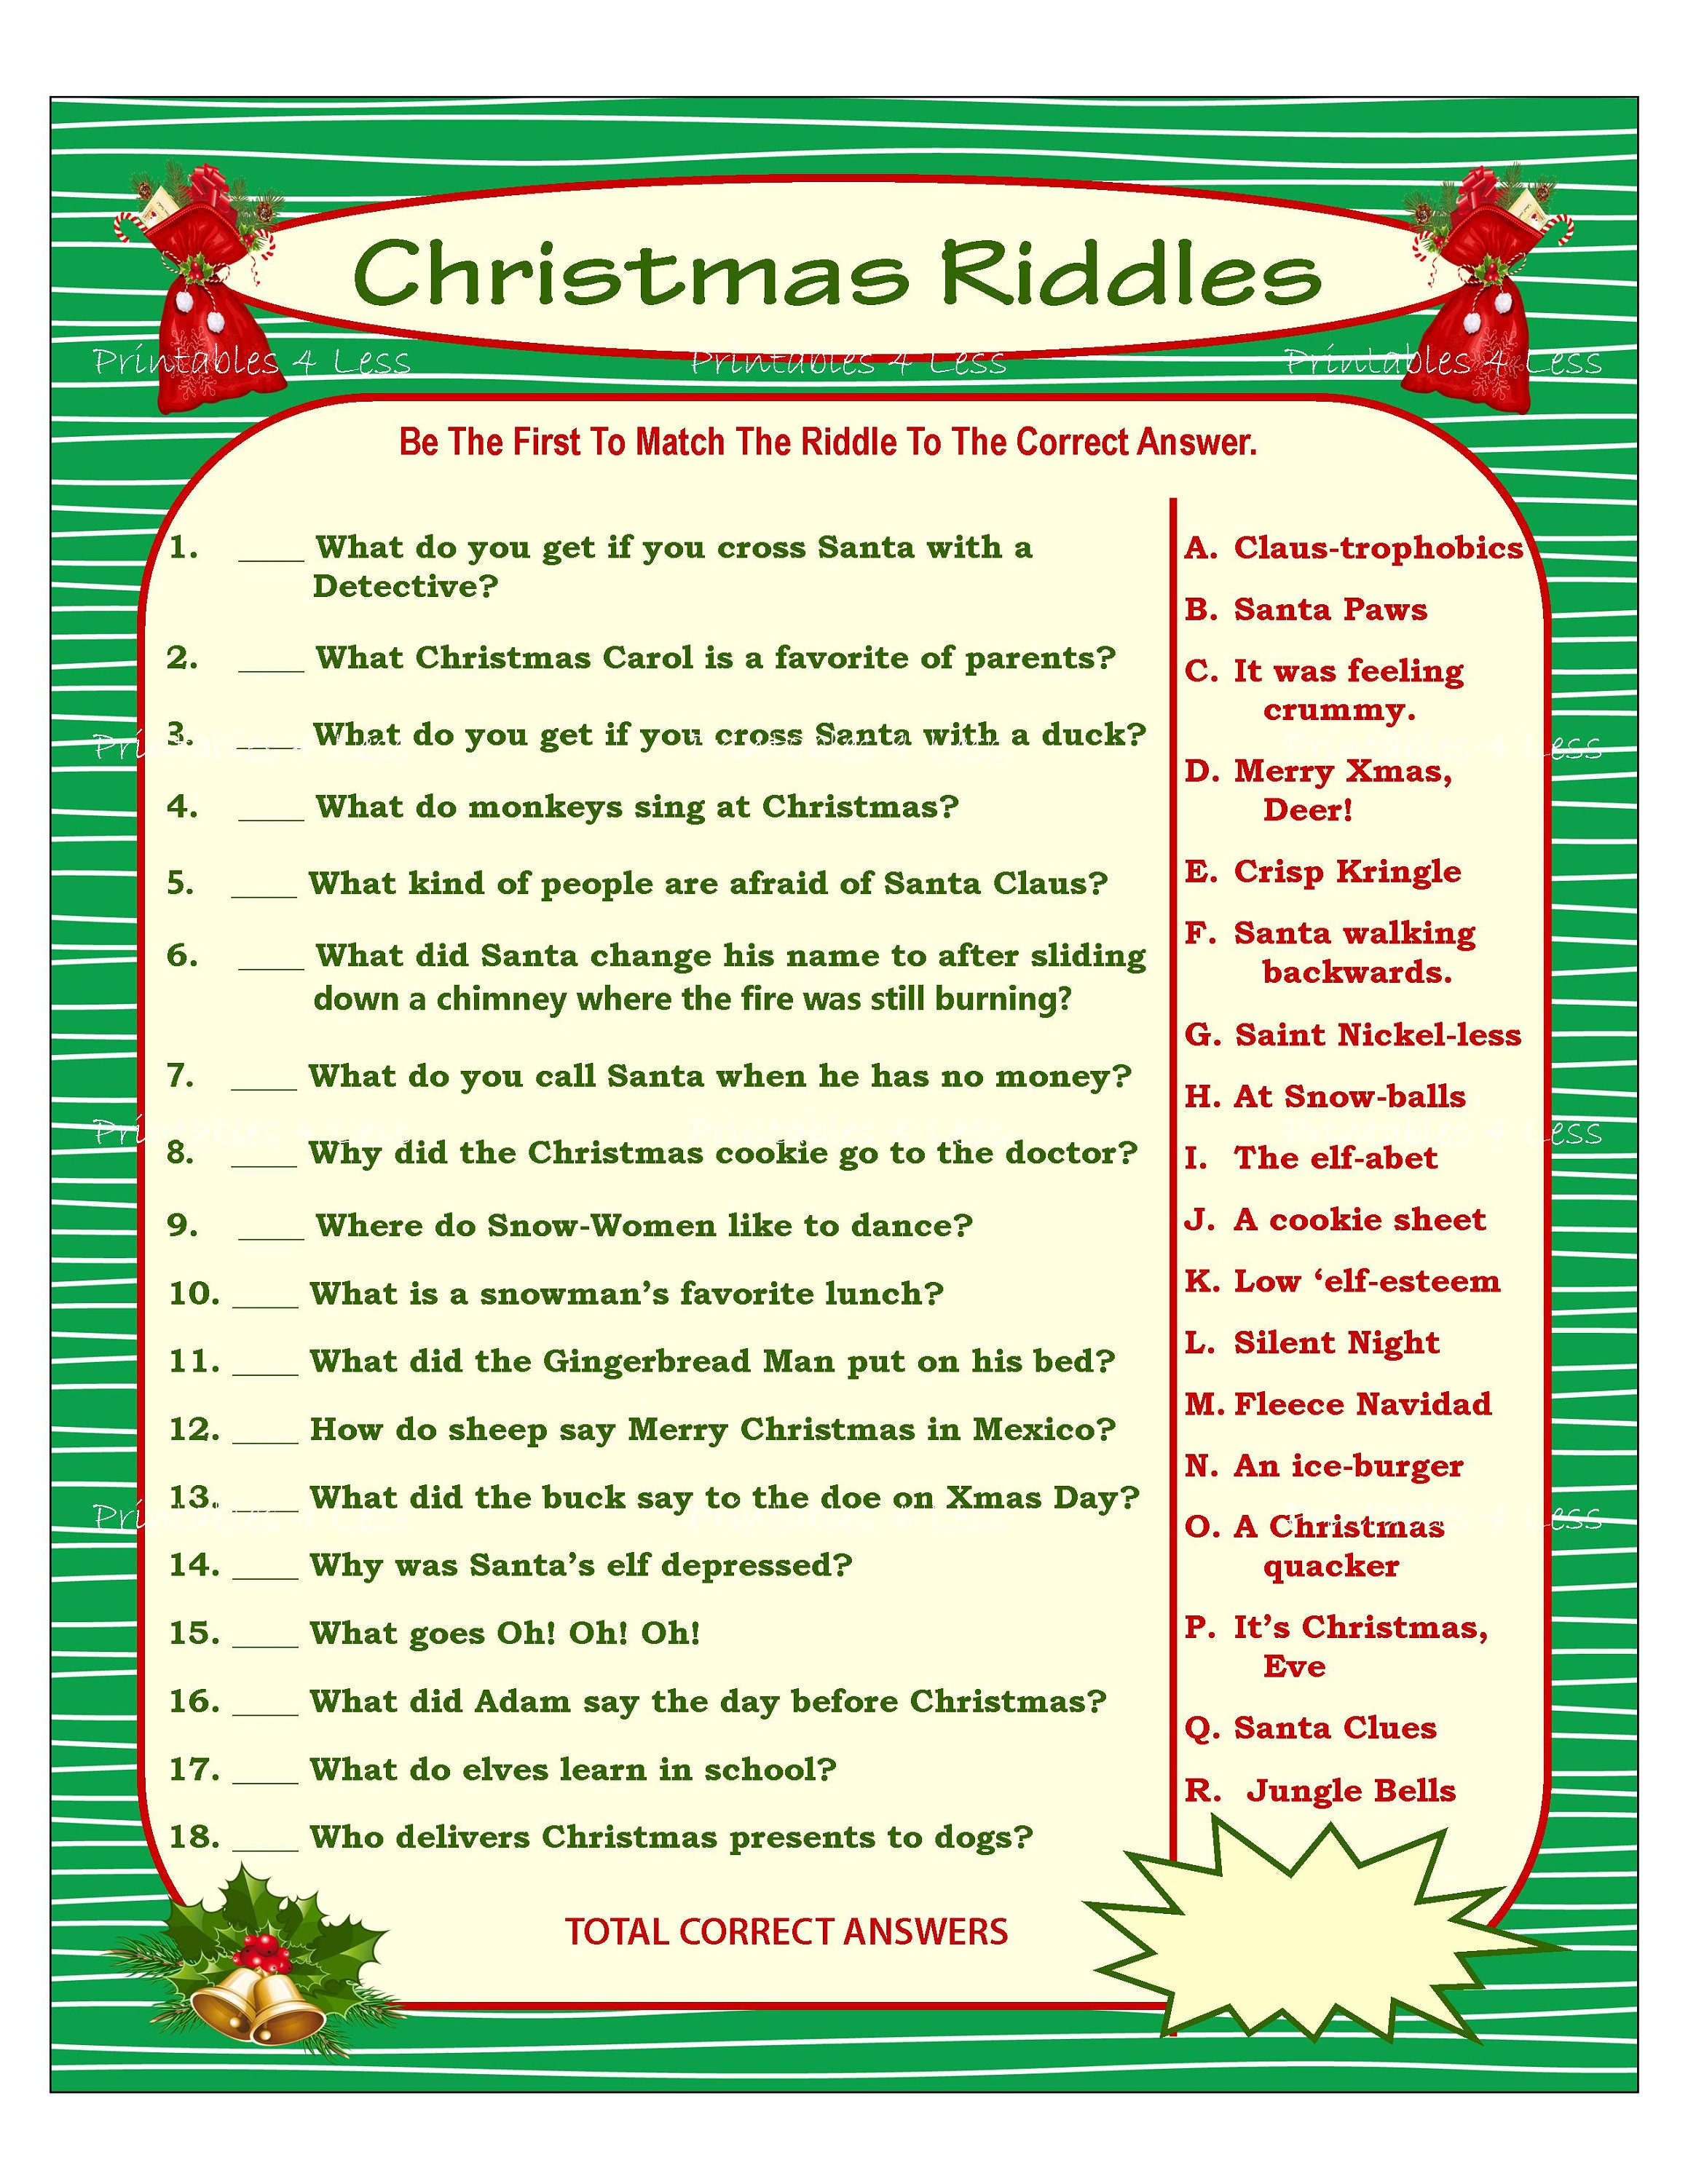 Riddles with answers pdf download